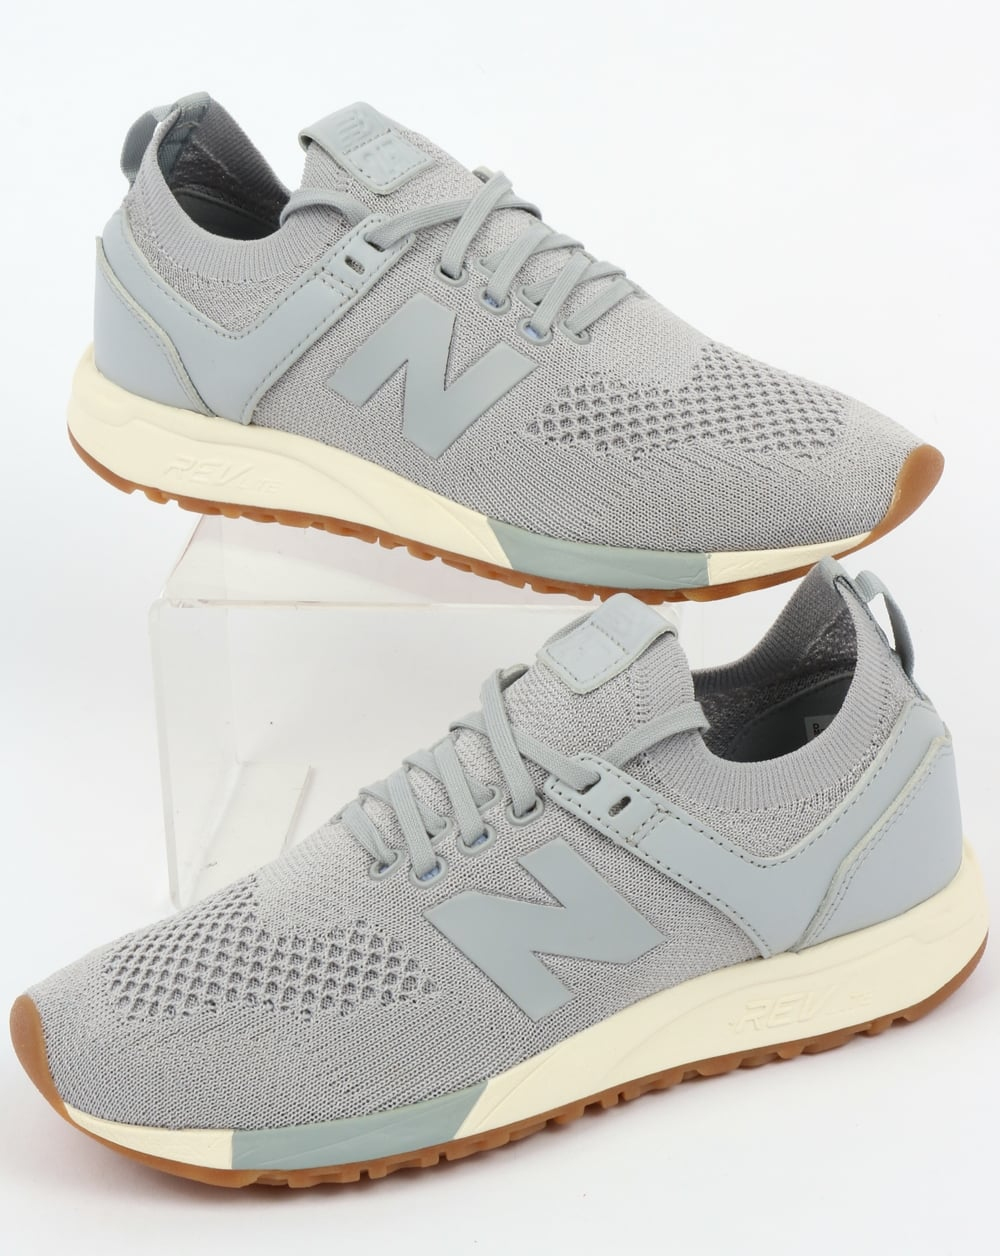 New Balance 247 Decon Trainers GreyWhite